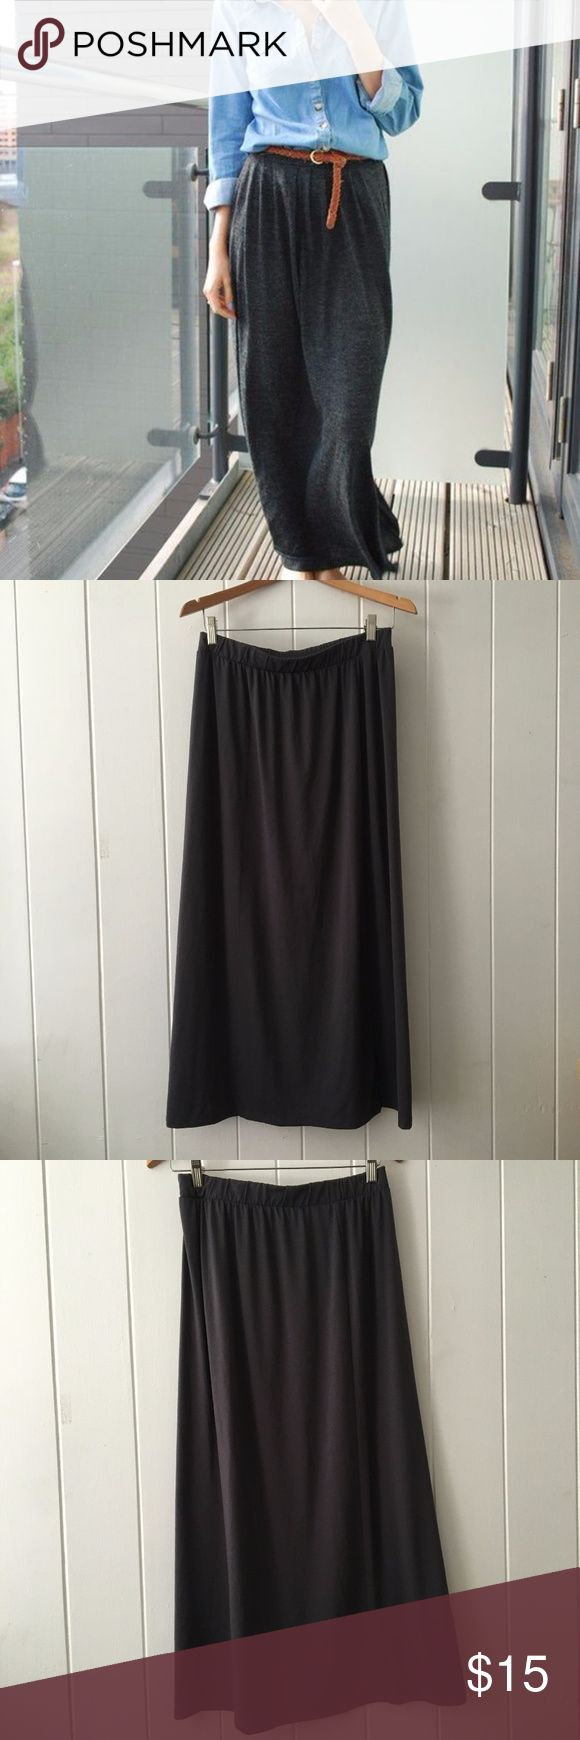 Uniqlo Dark Gray Basic Maxi Long Skirt Basic dark gray maxi flowy skirt First picture is not of actual skirt, used for style inspo UNIQLO Skirts Maxi